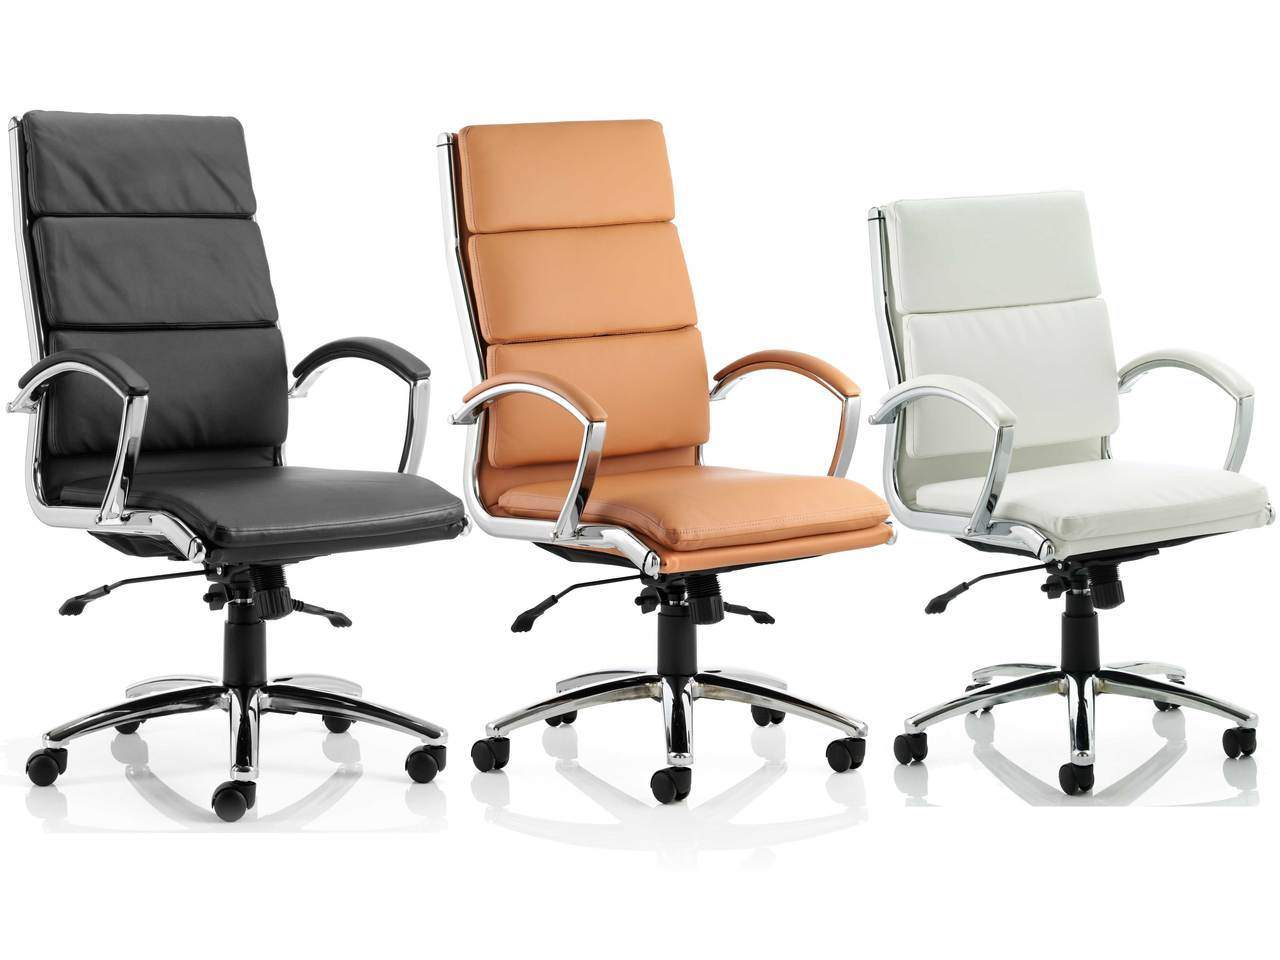 empire furniture view leather enlarged chairs manager office chair executive alphason